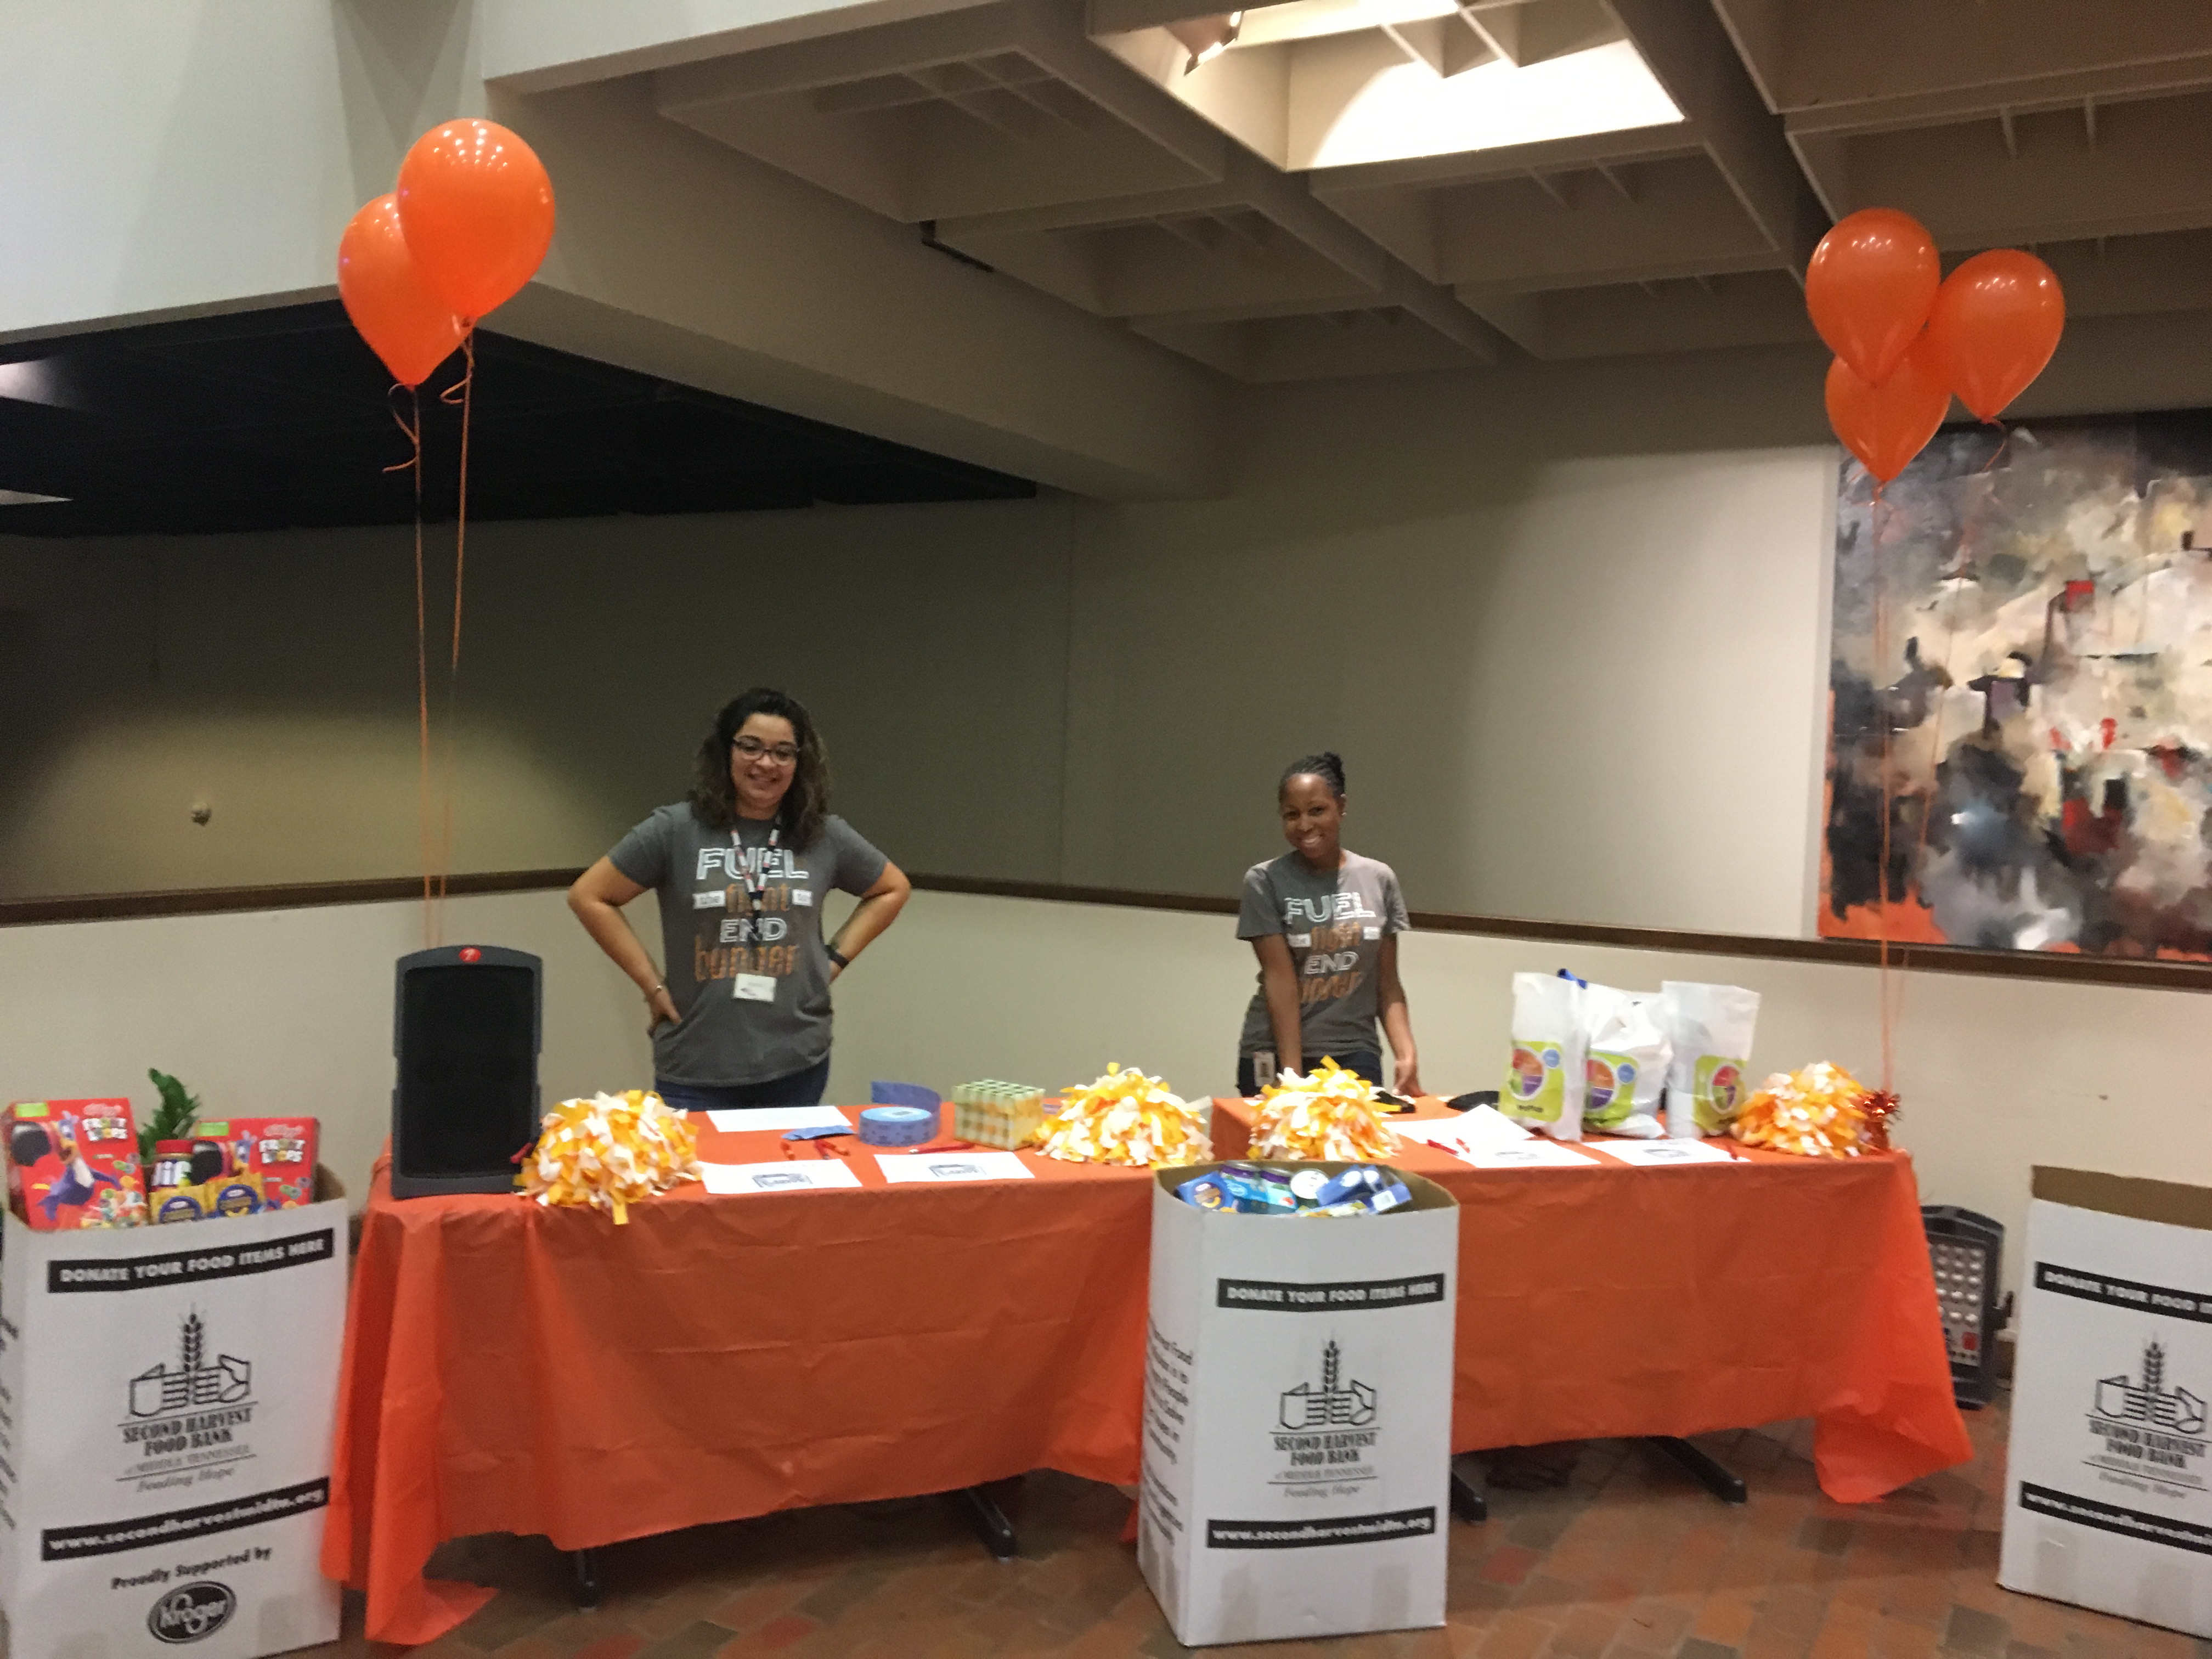 DHS hosted a Hunger Action & Wellness Walk in support of Hunger Action Month. Participants wore orange, walked to raise awareness about food insecurity in Tennessee and donated non-perishable food items.